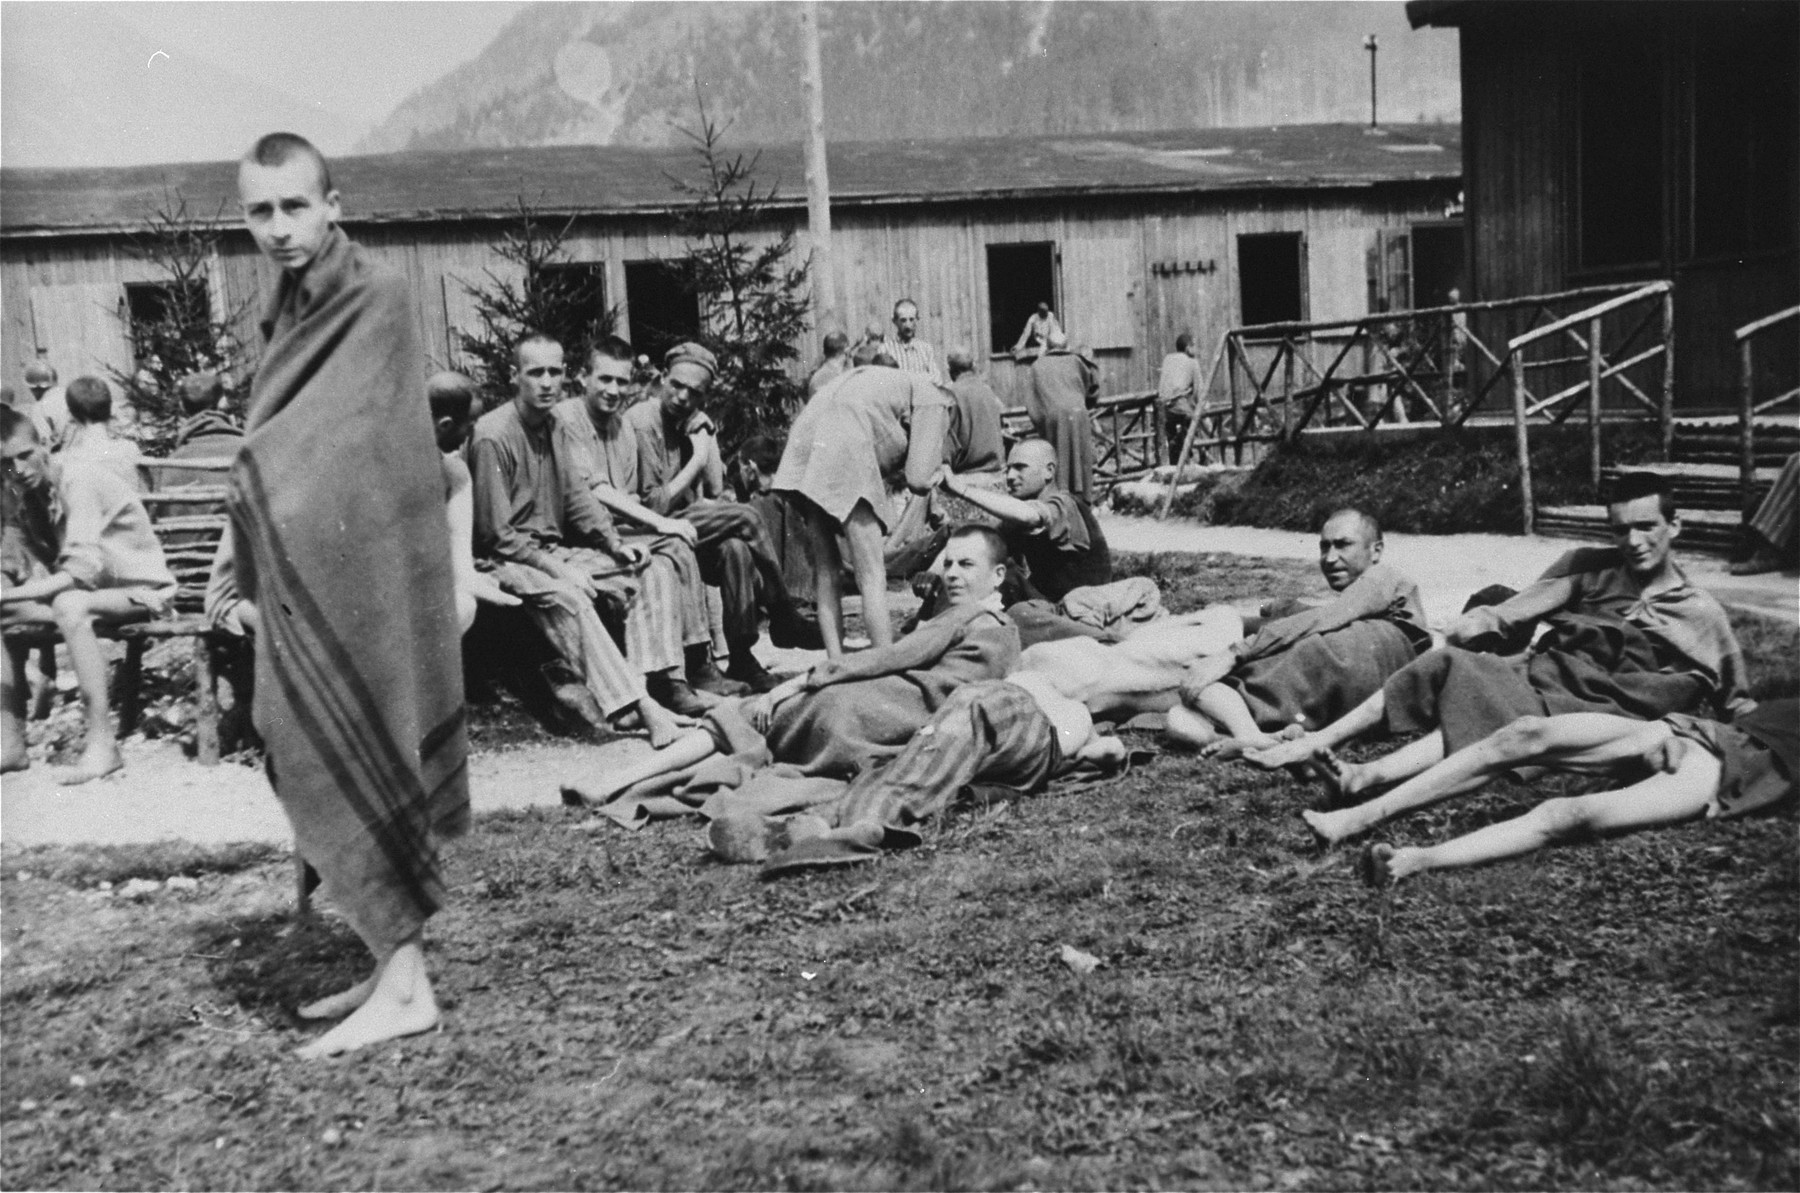 Survivors gather in Ebensee.    The man in the foreground is Mr. Fajwel, originally from Kalisz, Poland, imprisoned in Warsaw ghetto, Czestochowa ghetto - Hassag labor camp, Bedzin ghetto, Auschwitz-Birkenau, Swietochowice and Ebensee, where he was liberated by the U.S. Army.